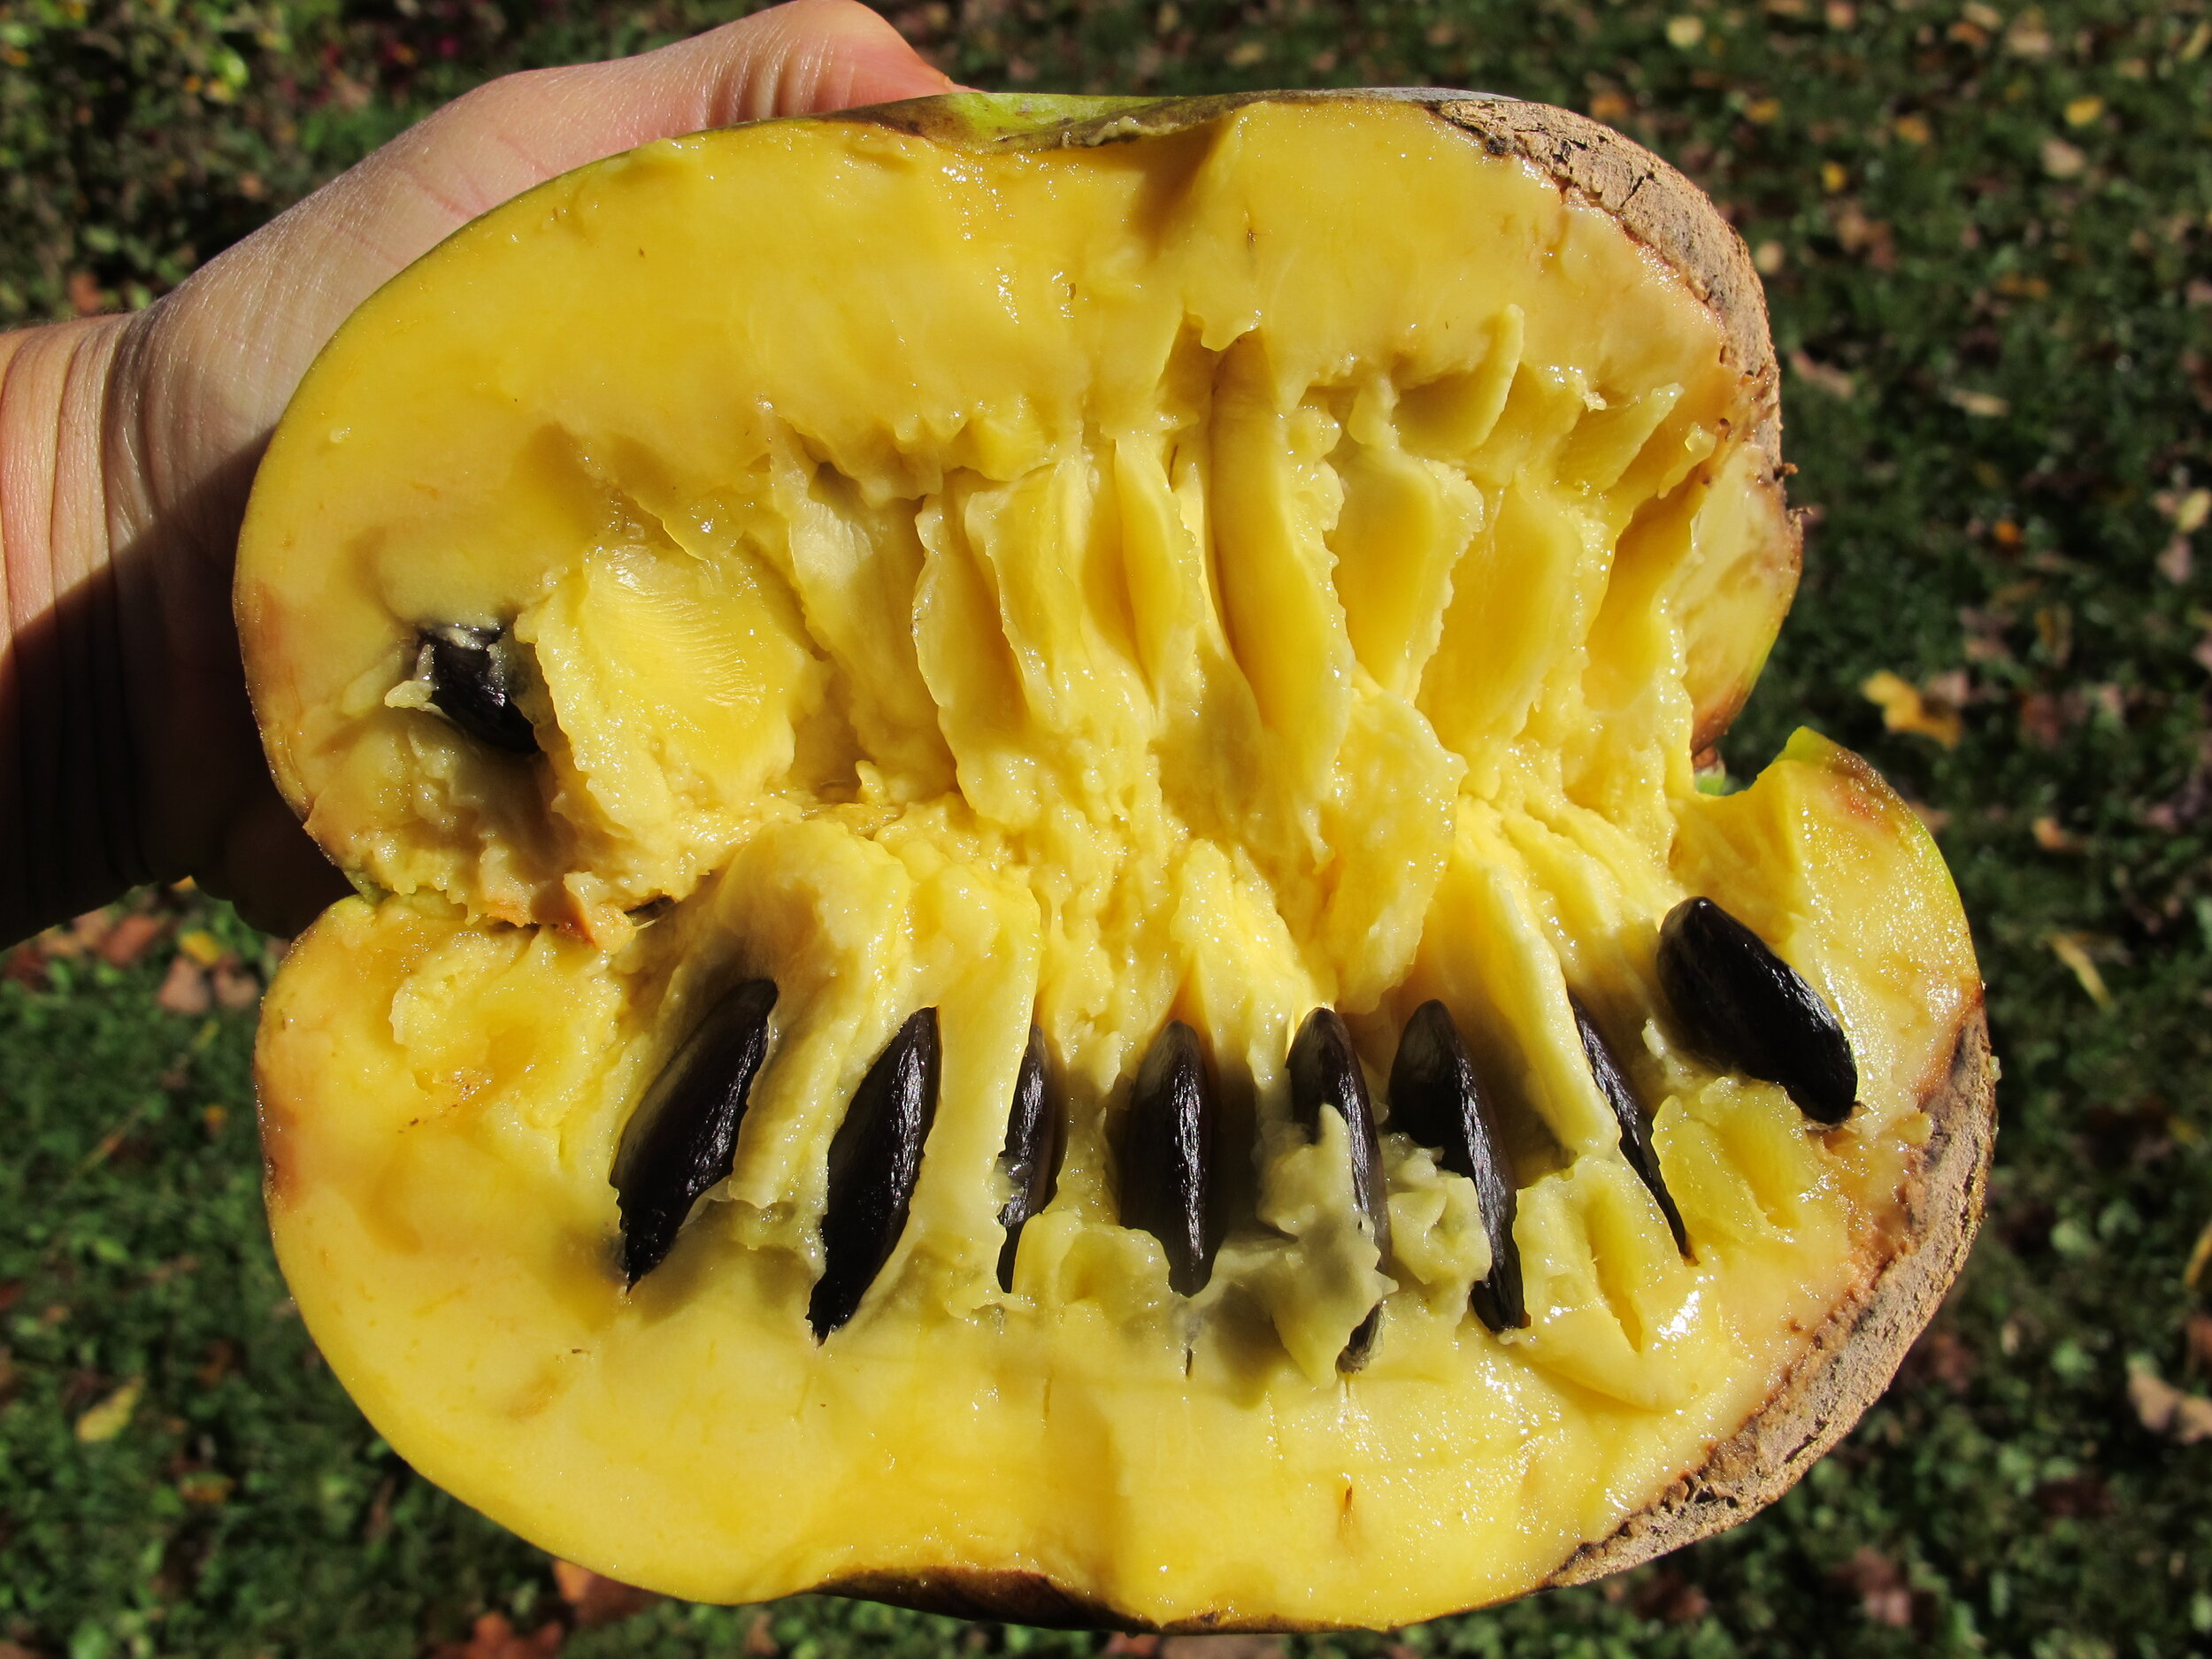 Inside the pawpaw we see yellow flesh with black seeds. Only flesh / fruit pulp is edible. Remove skin and seeds. Eat flesh raw or cooked.